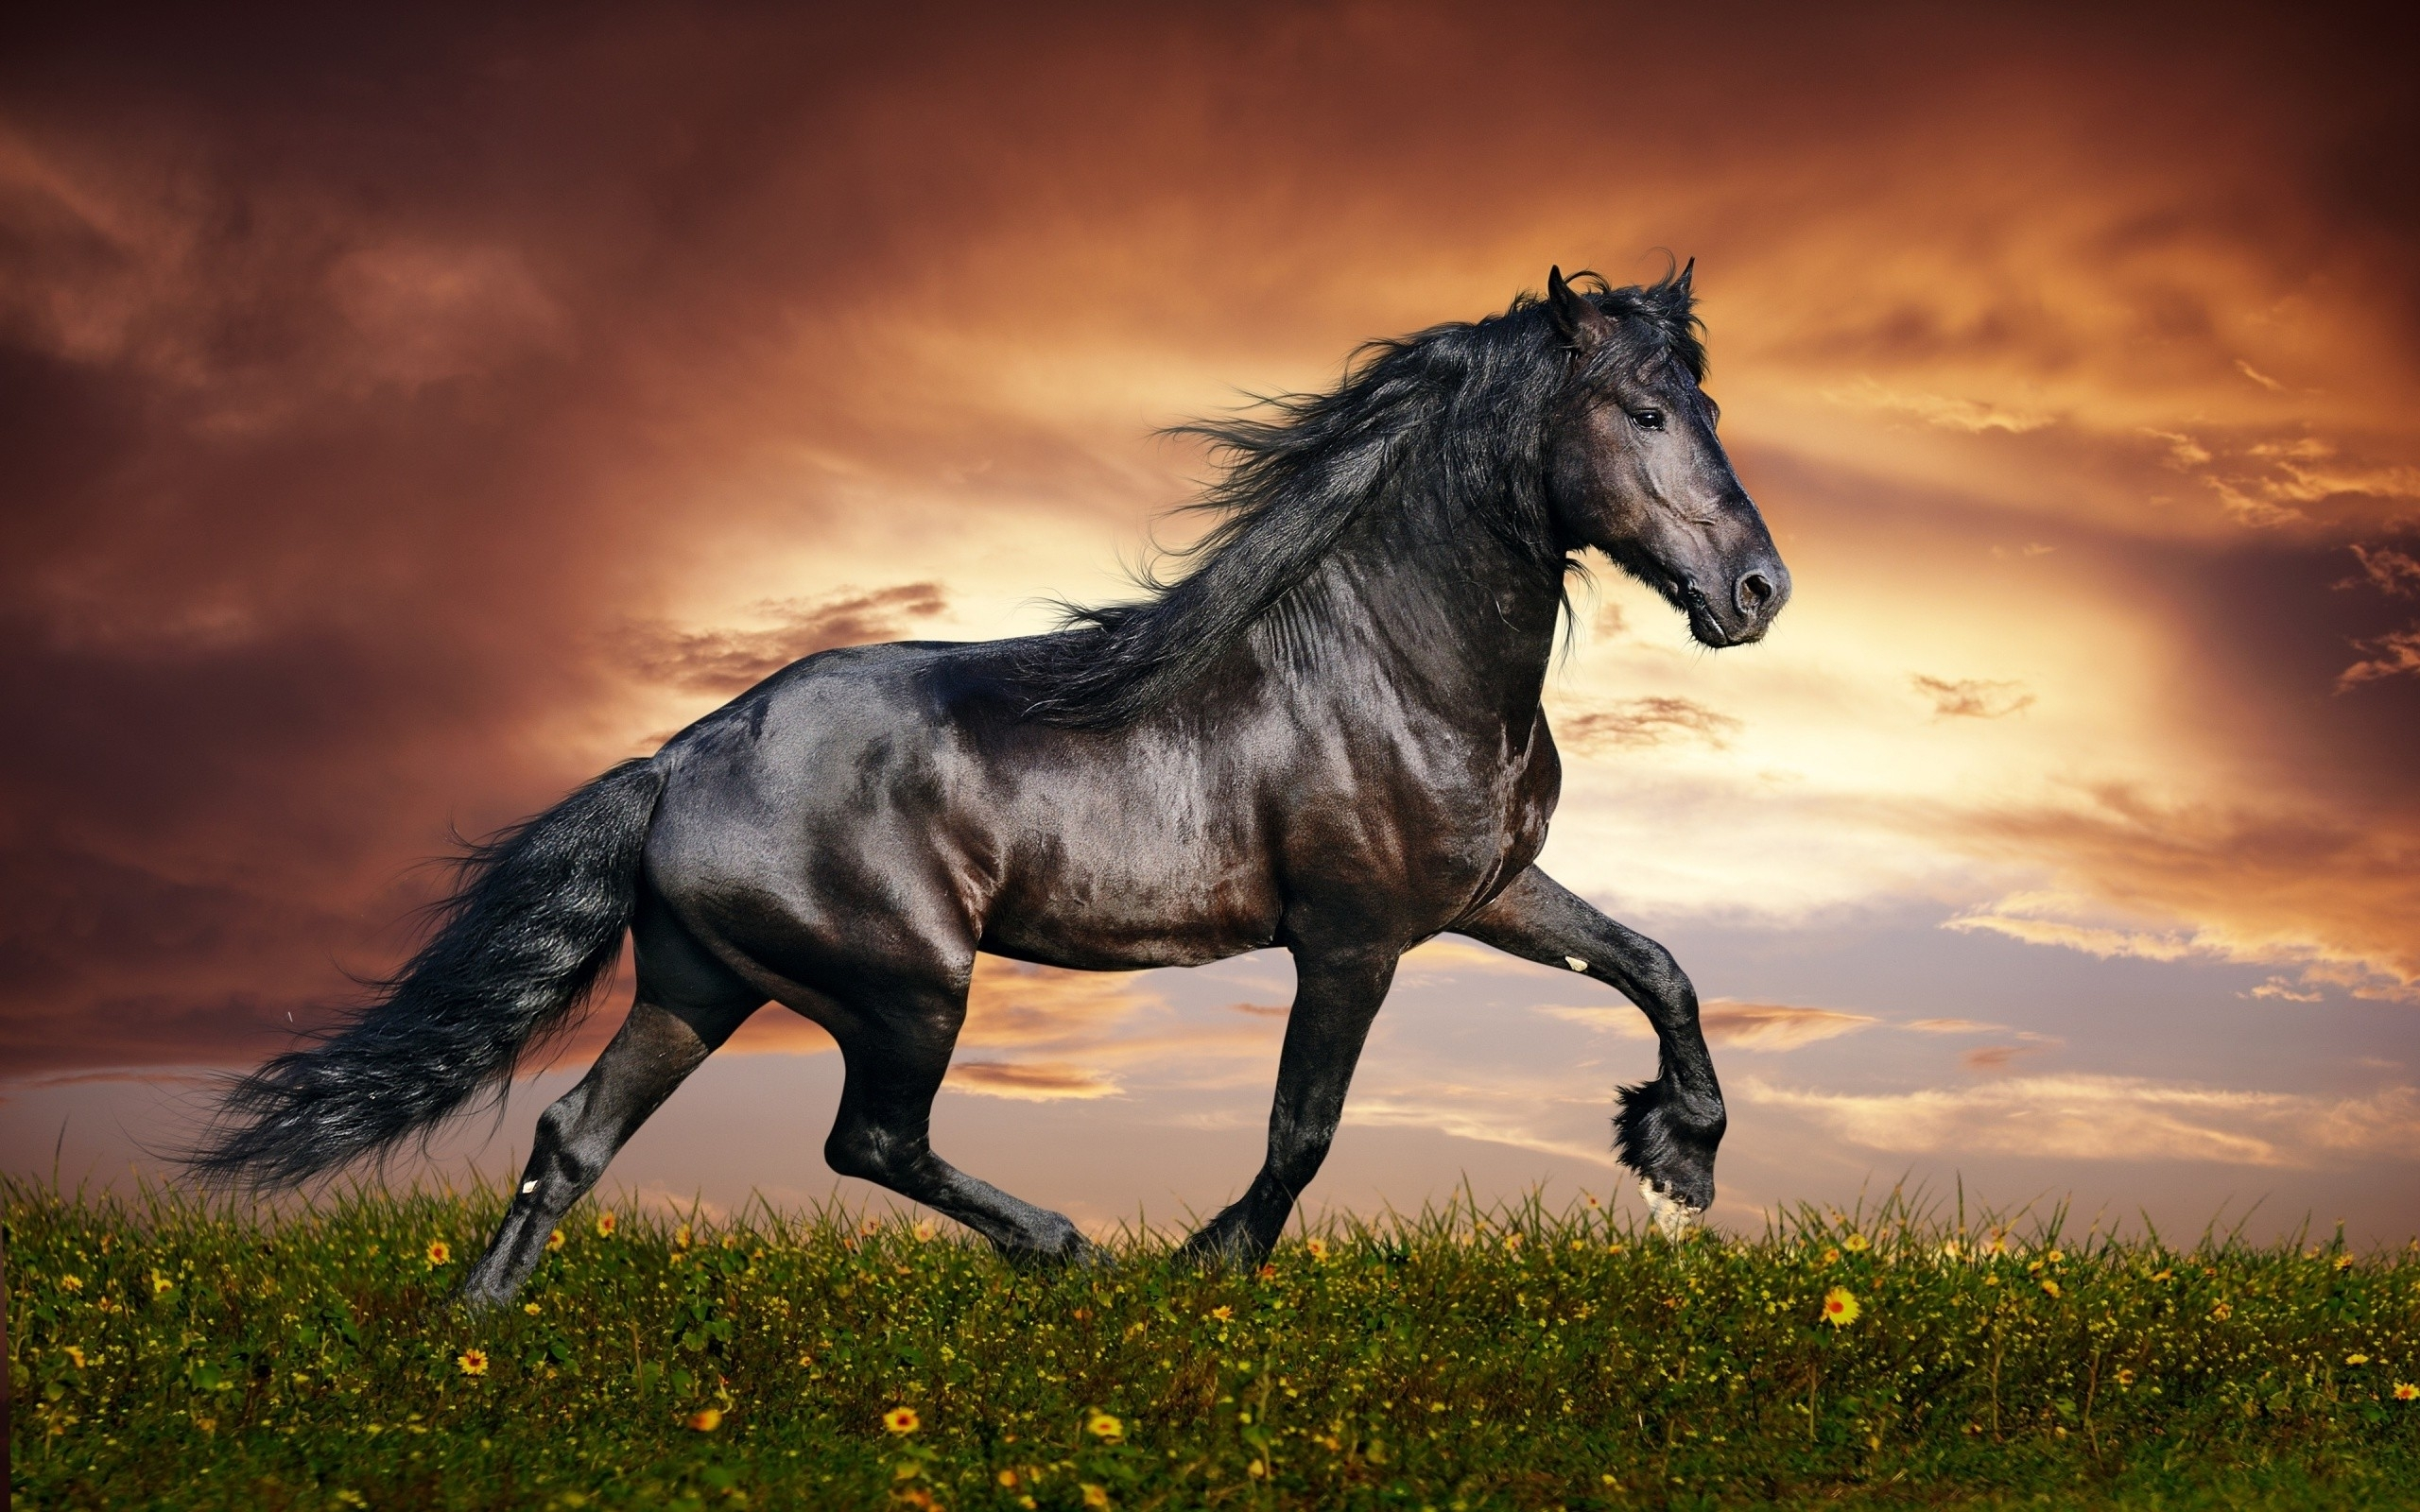 60+ horse backgrounds ·① download free stunning high resolution